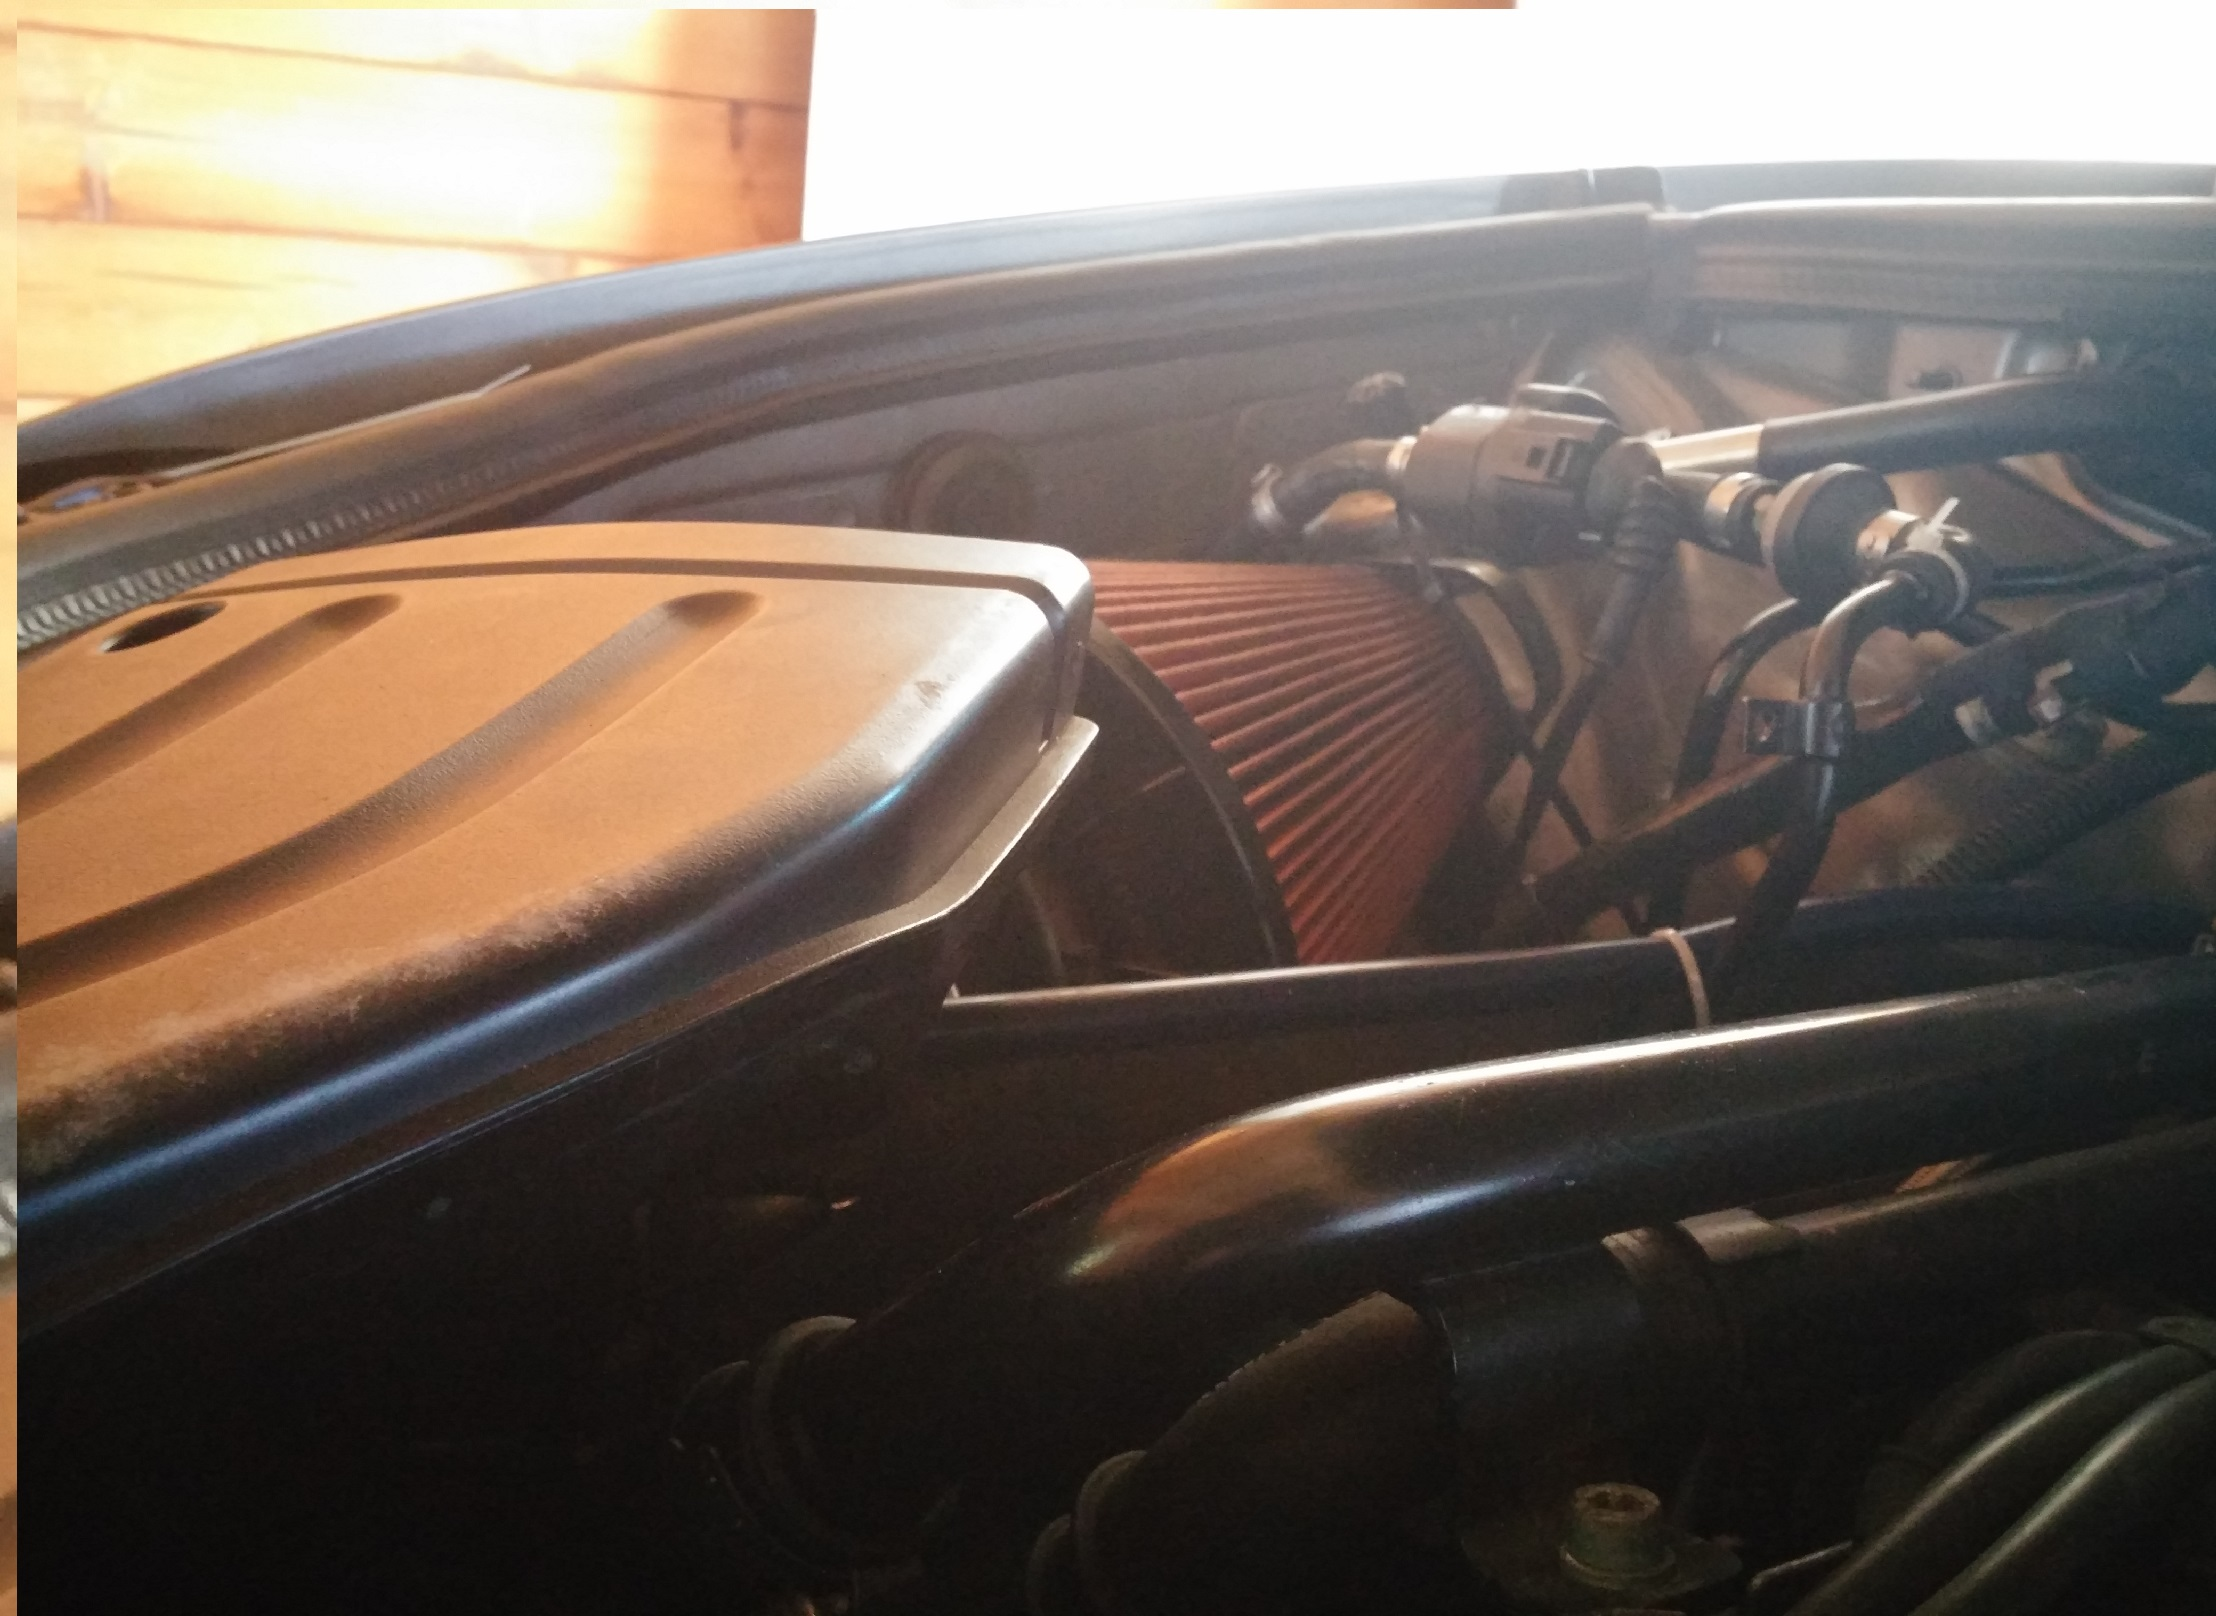 1 8t Cabrio K04 turbo upgrade (not the usual rubbish ones